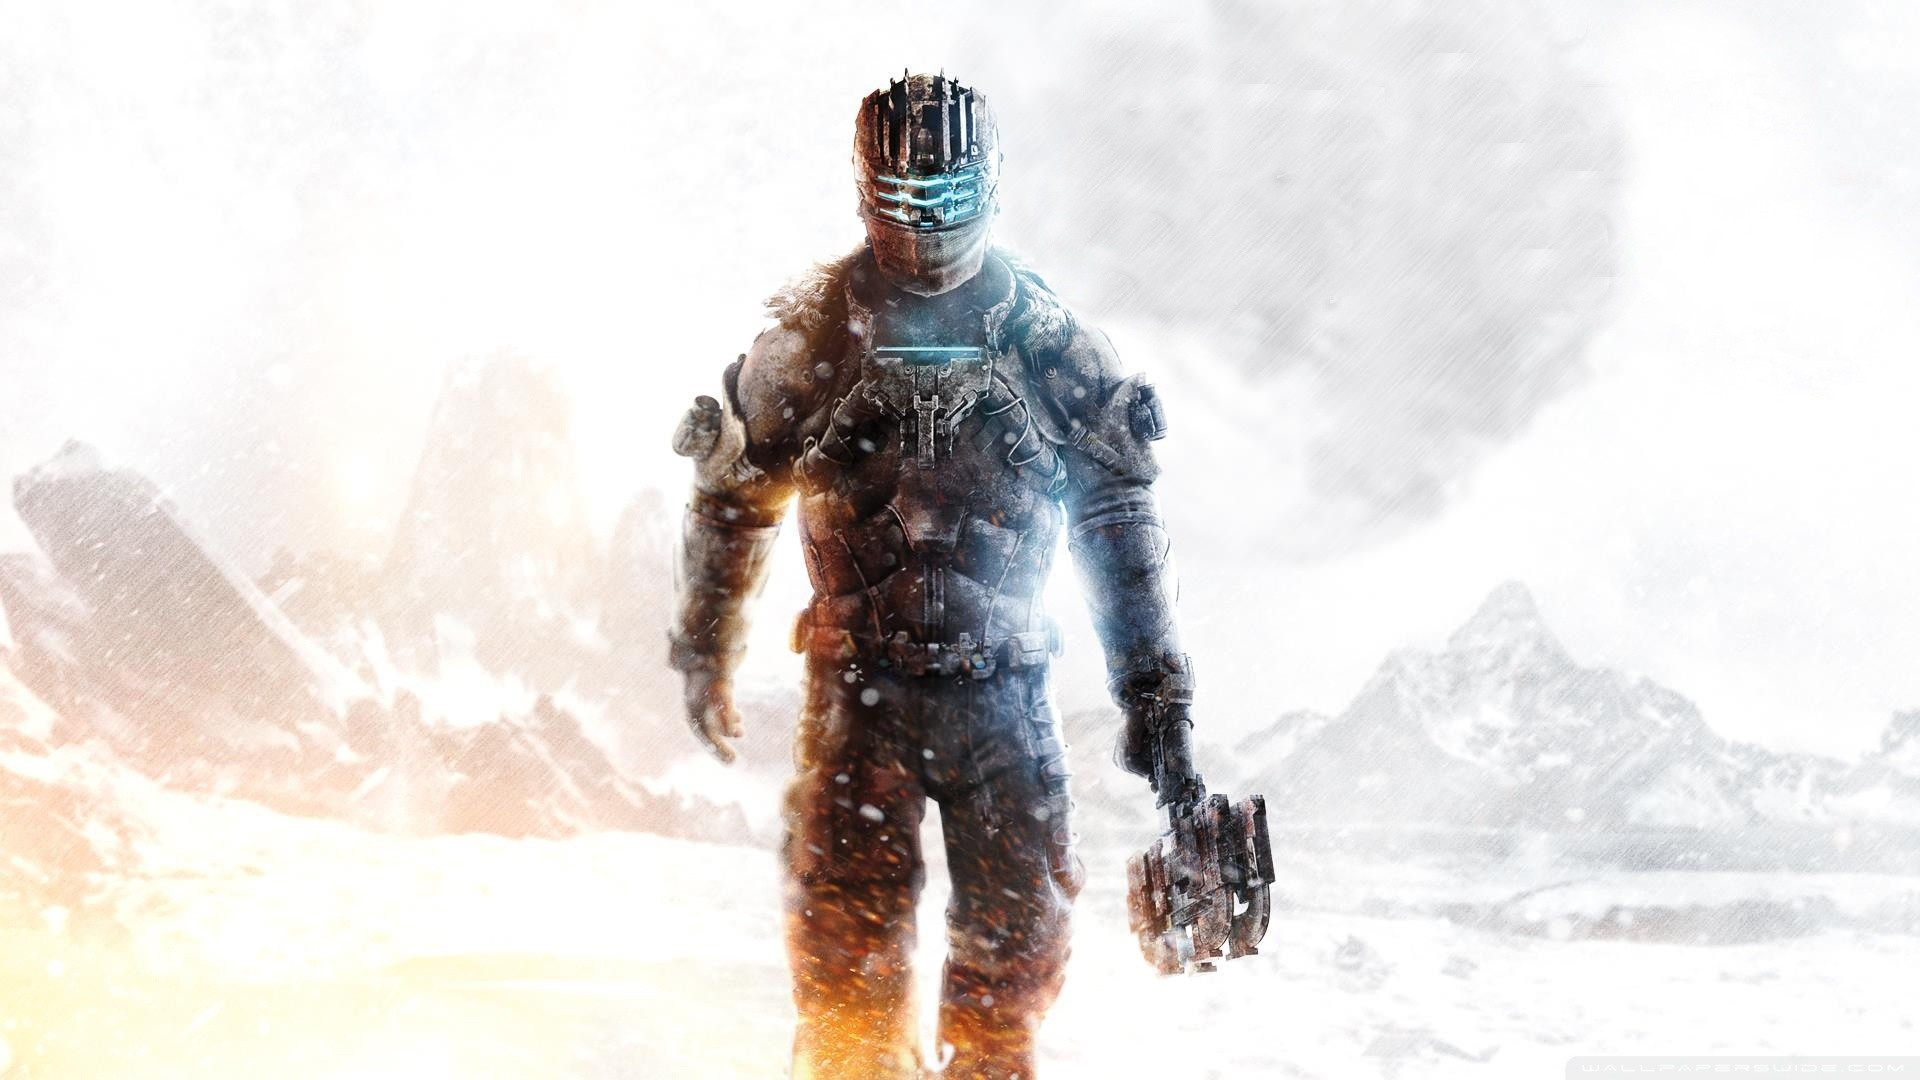 dead space wallpaper ·① download free beautiful hd backgrounds for